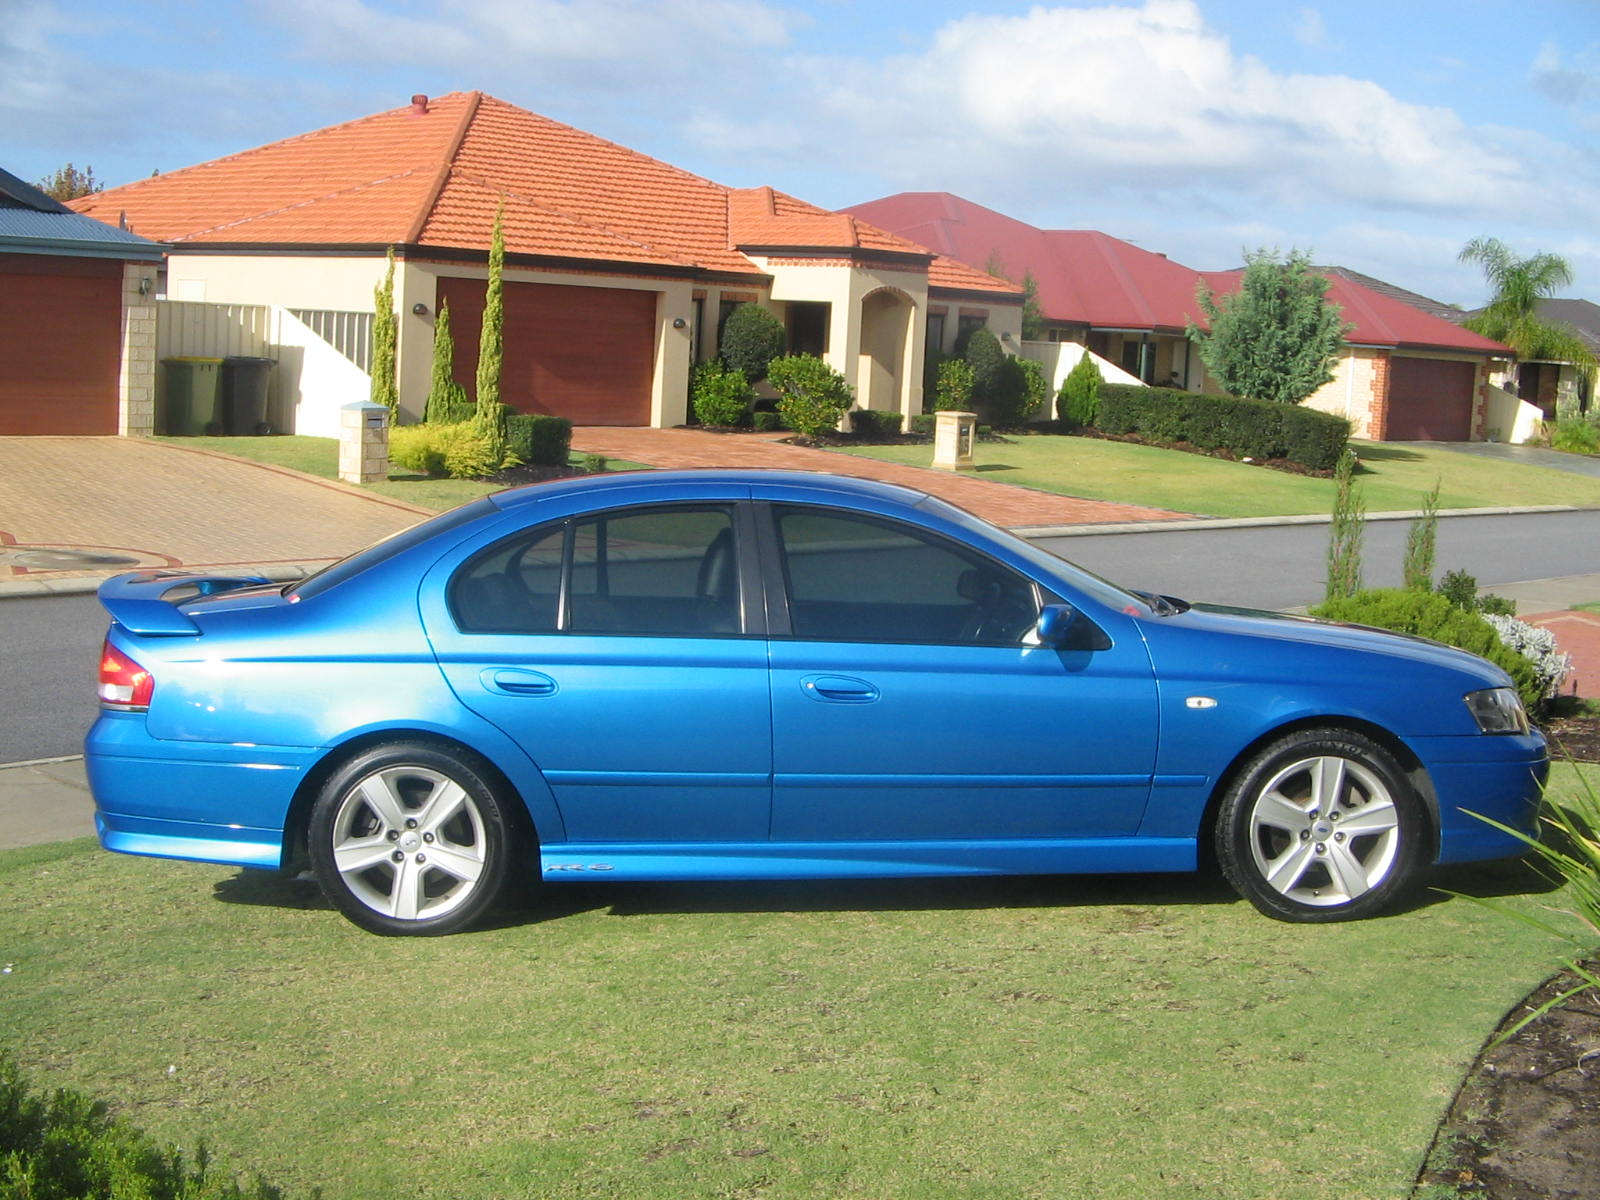 2003 Ford Falcon xr6 turbo